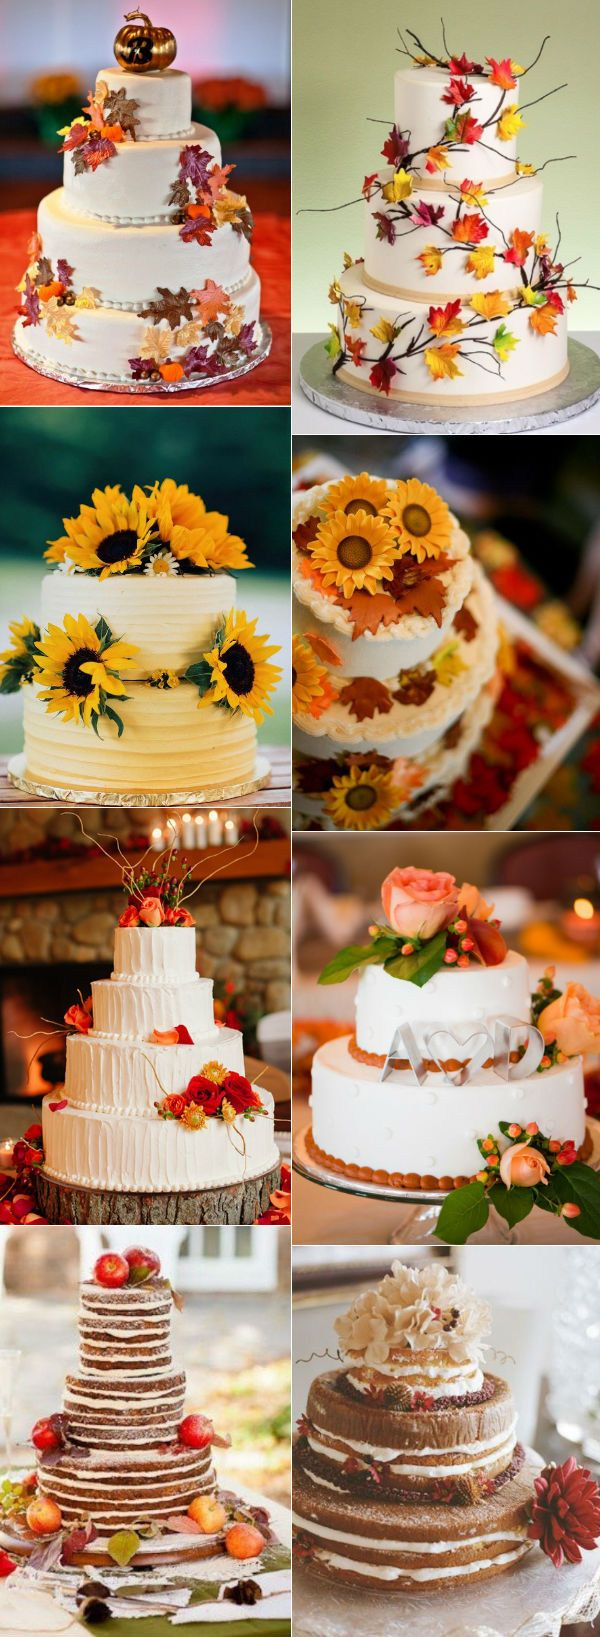 32 Amazing Wedding Cakes Perfect For Fall Fall wedding